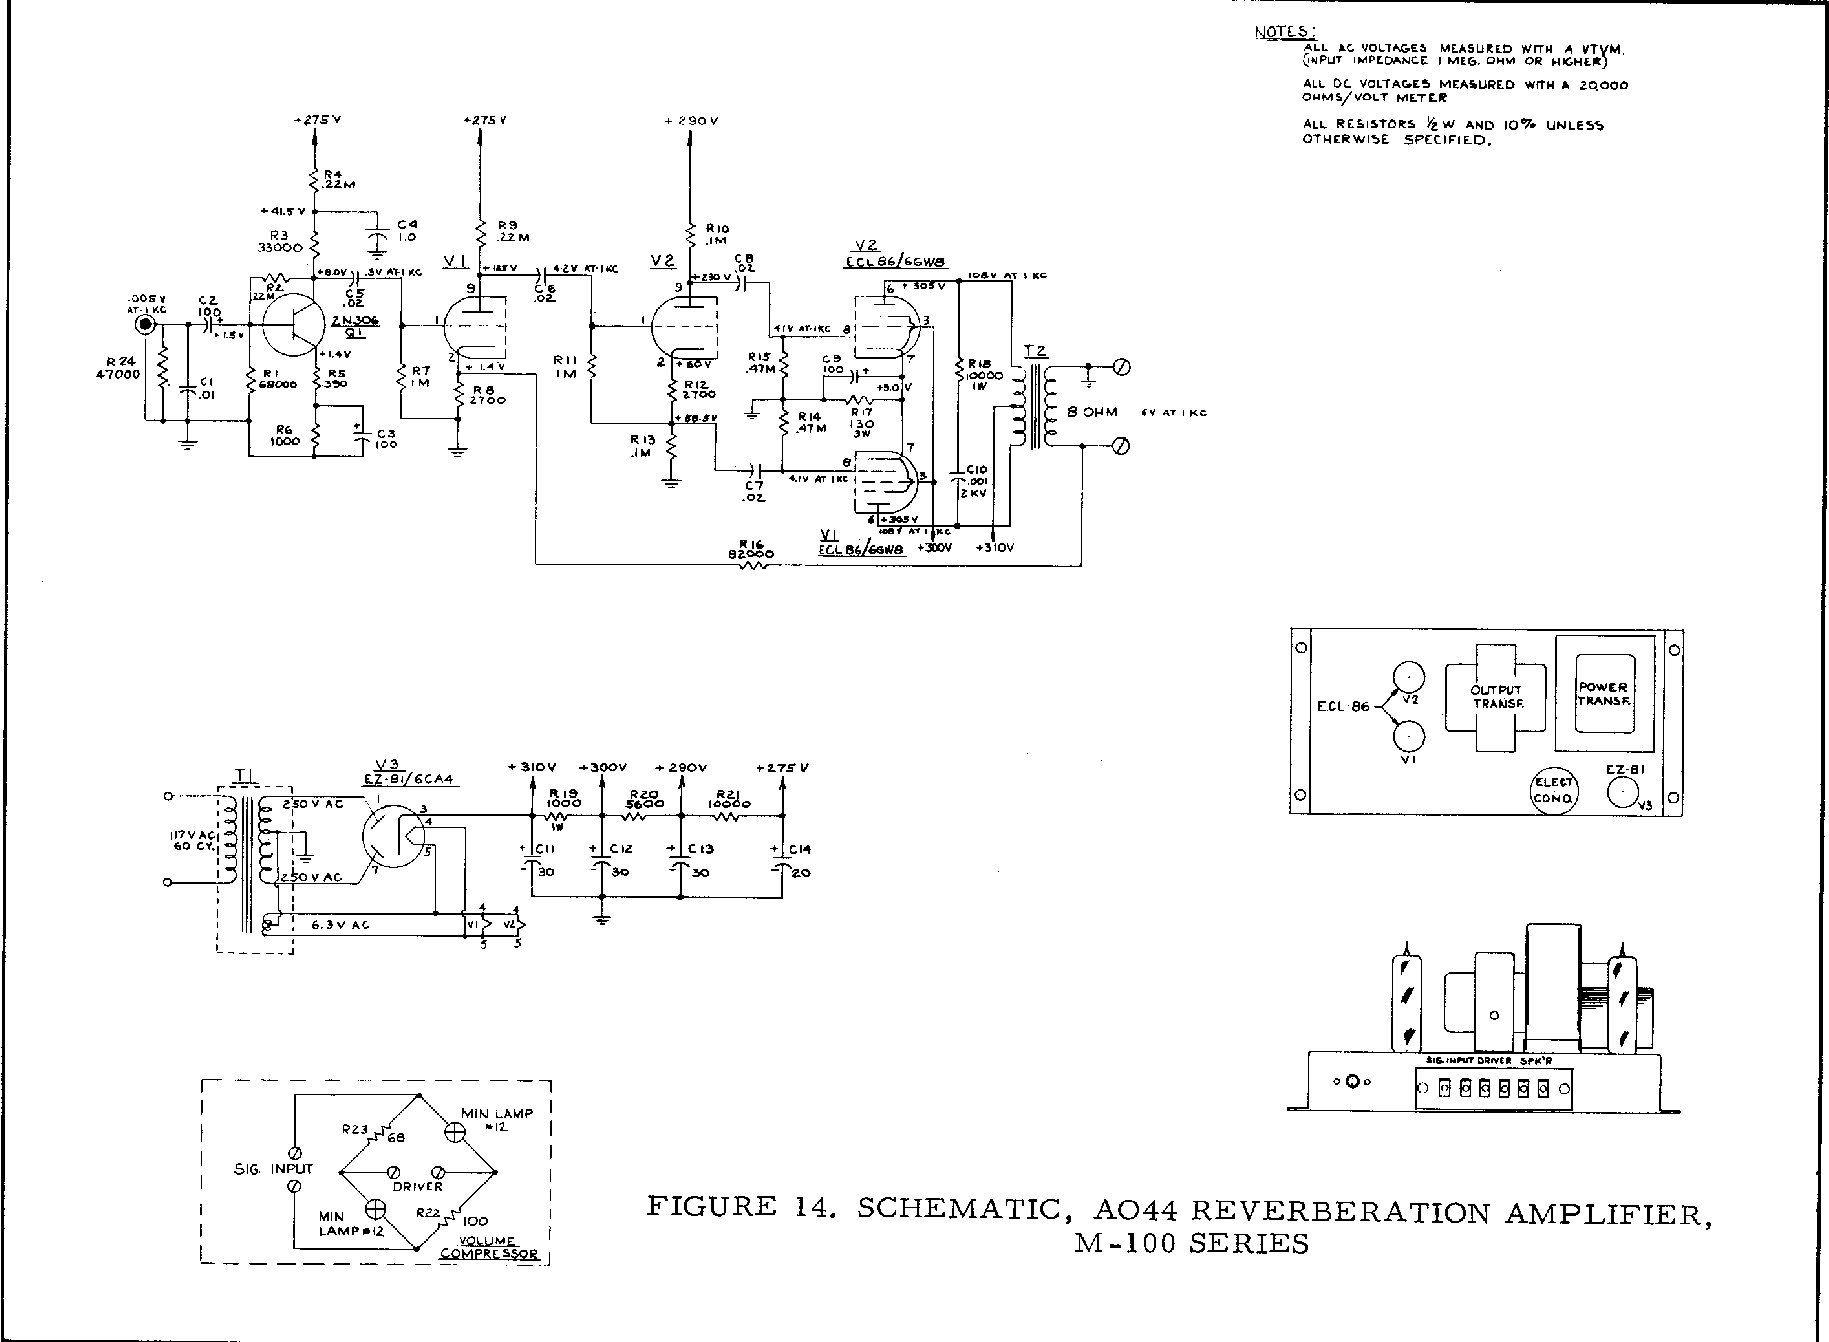 Hammond Schematics Here And Elsewhere On The Net Wiring Diagram For Subs Jl Audio 500 1 M 100 A Ao 44 Reverb Amp Schematic